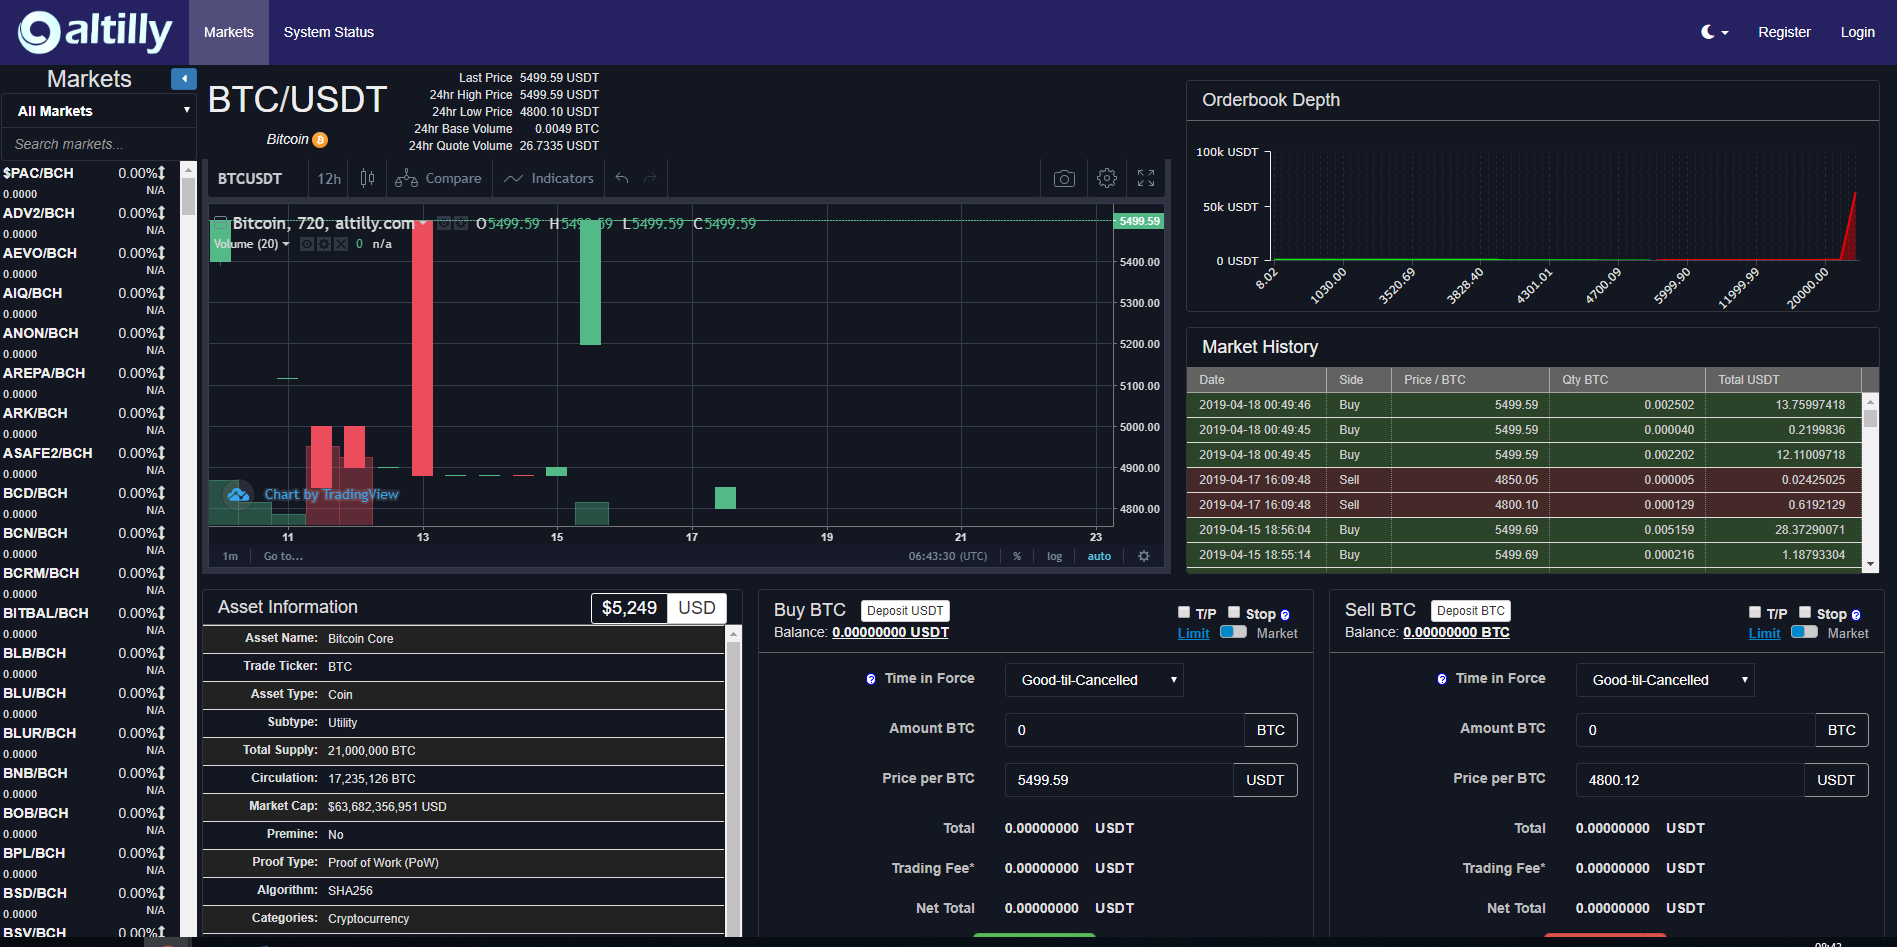 Altilly Trading View